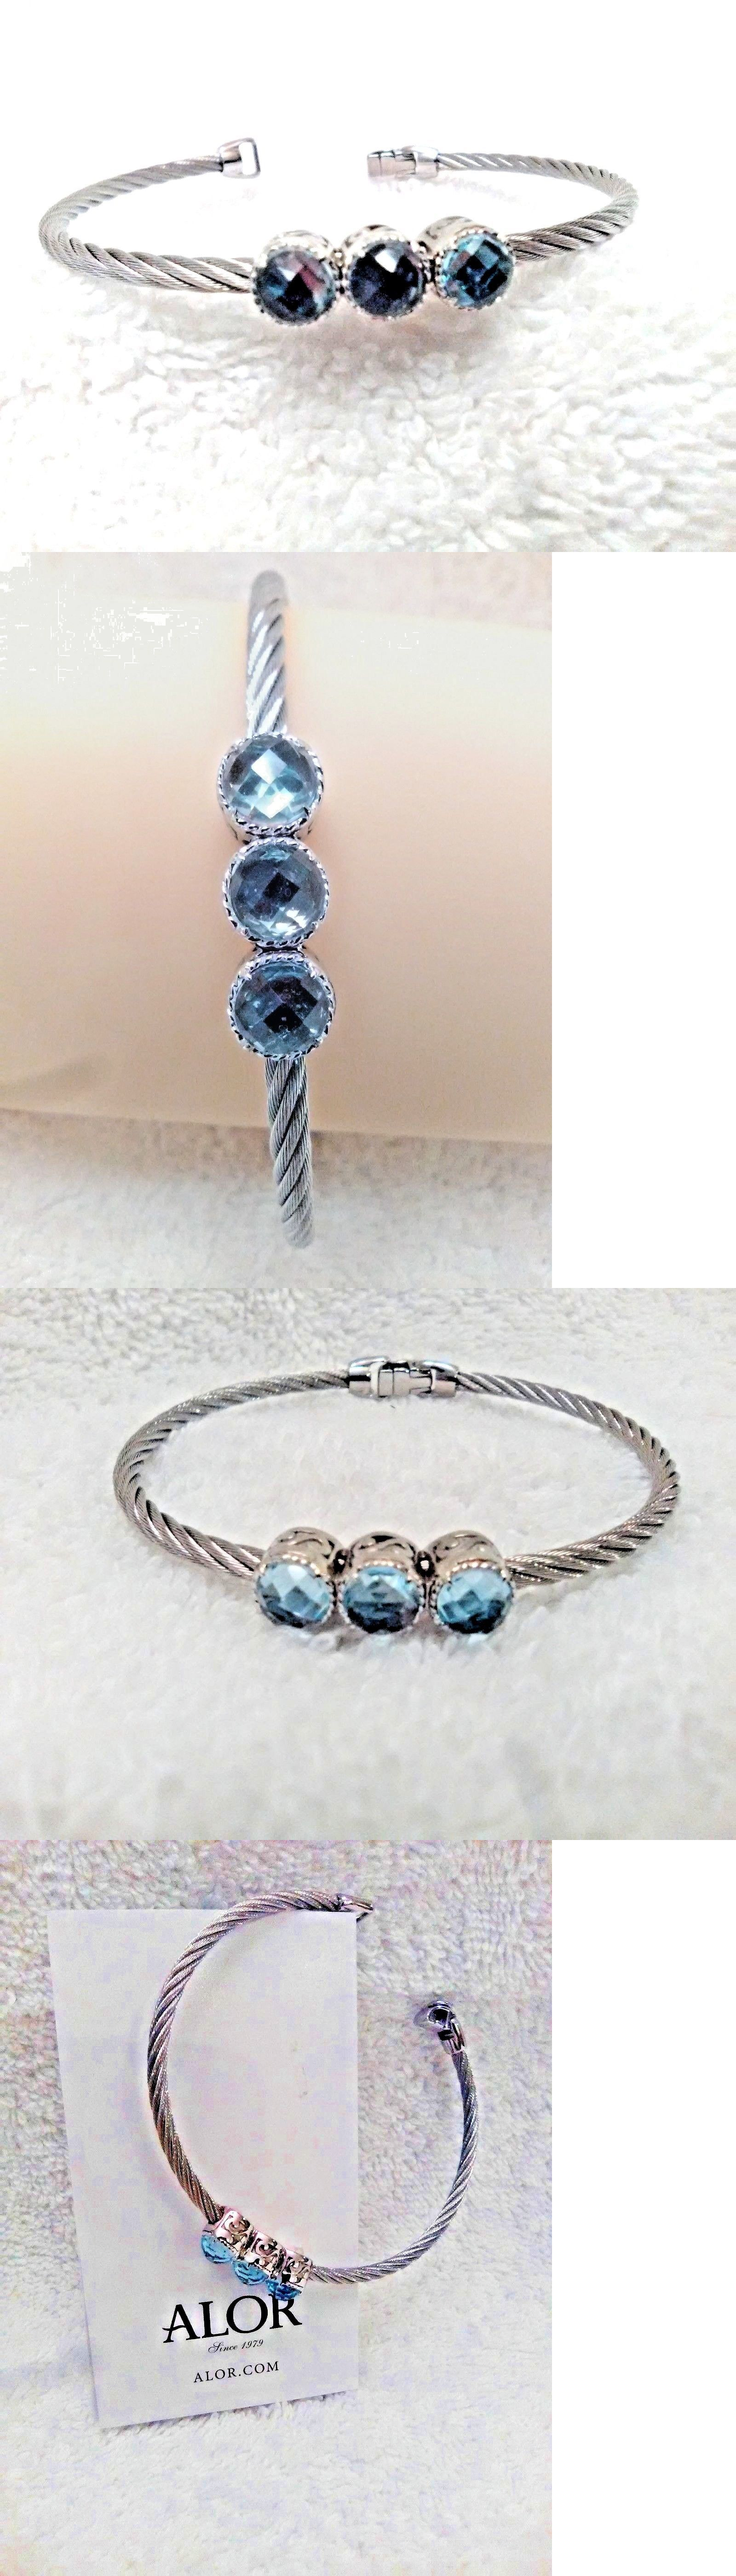 Alor k gold stone blue topaz twisted cable bangle grey new